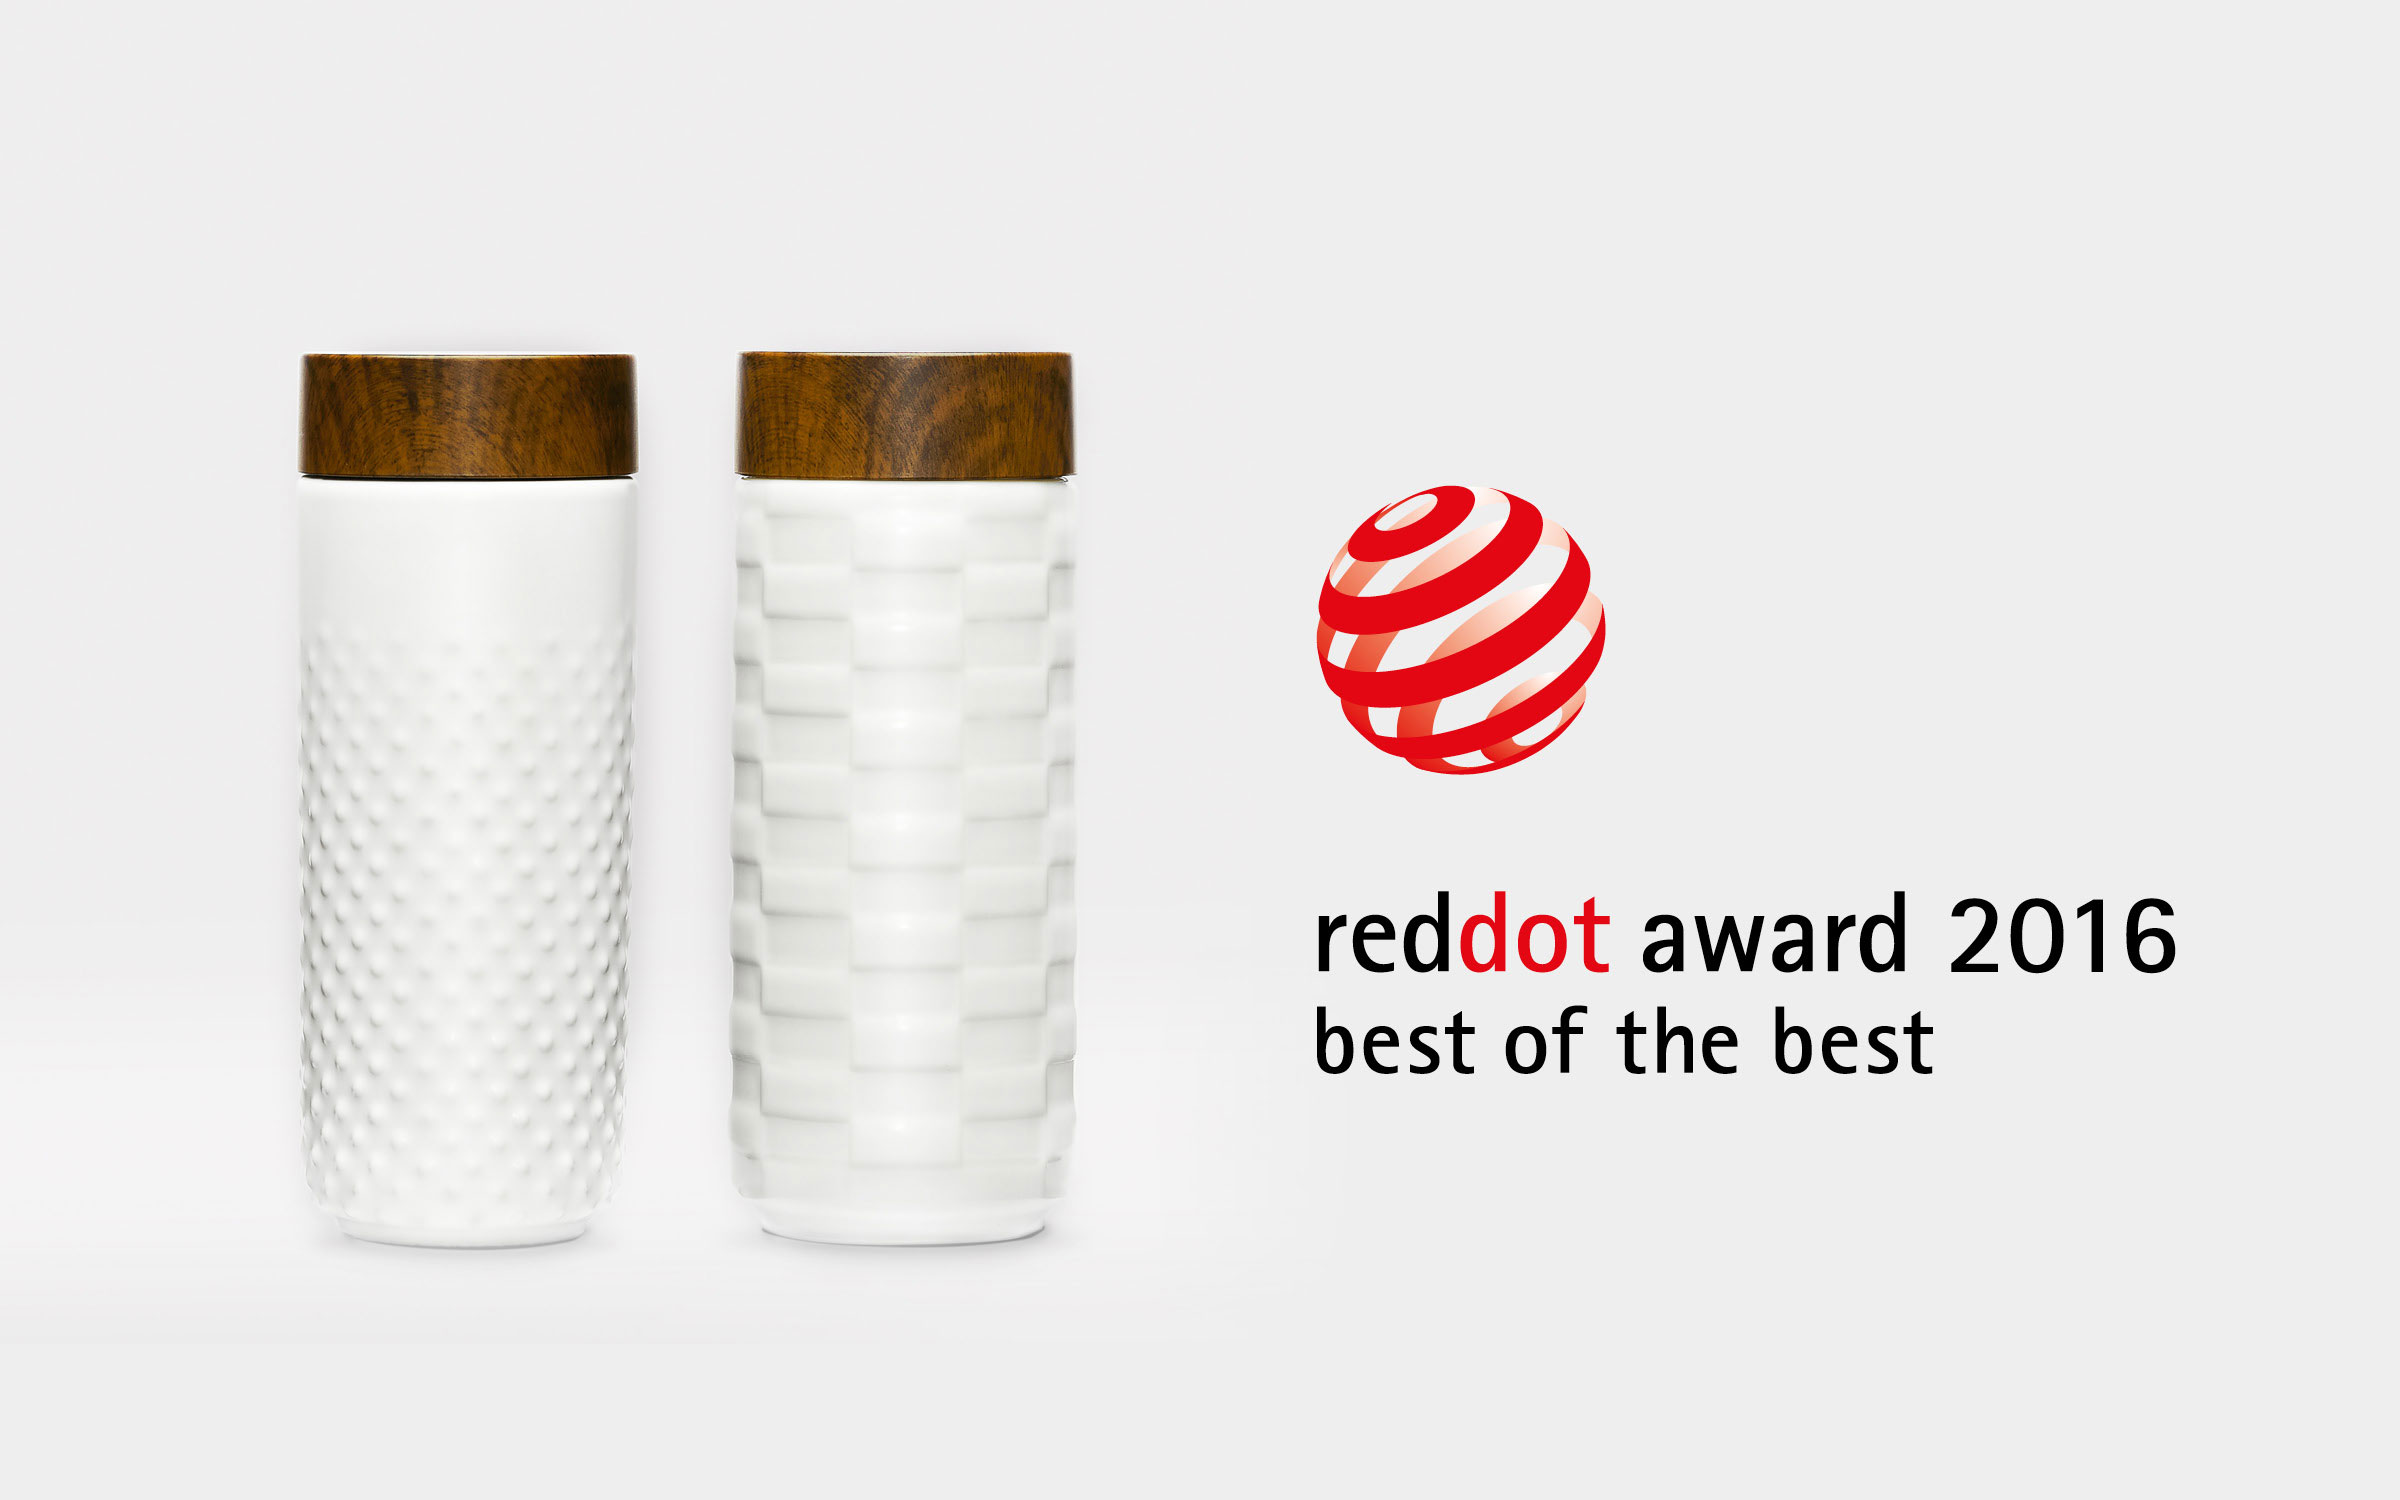 Together with Acera, Hangar Design Group wins the Red Dot Design Award with its travel mug One-O-One.